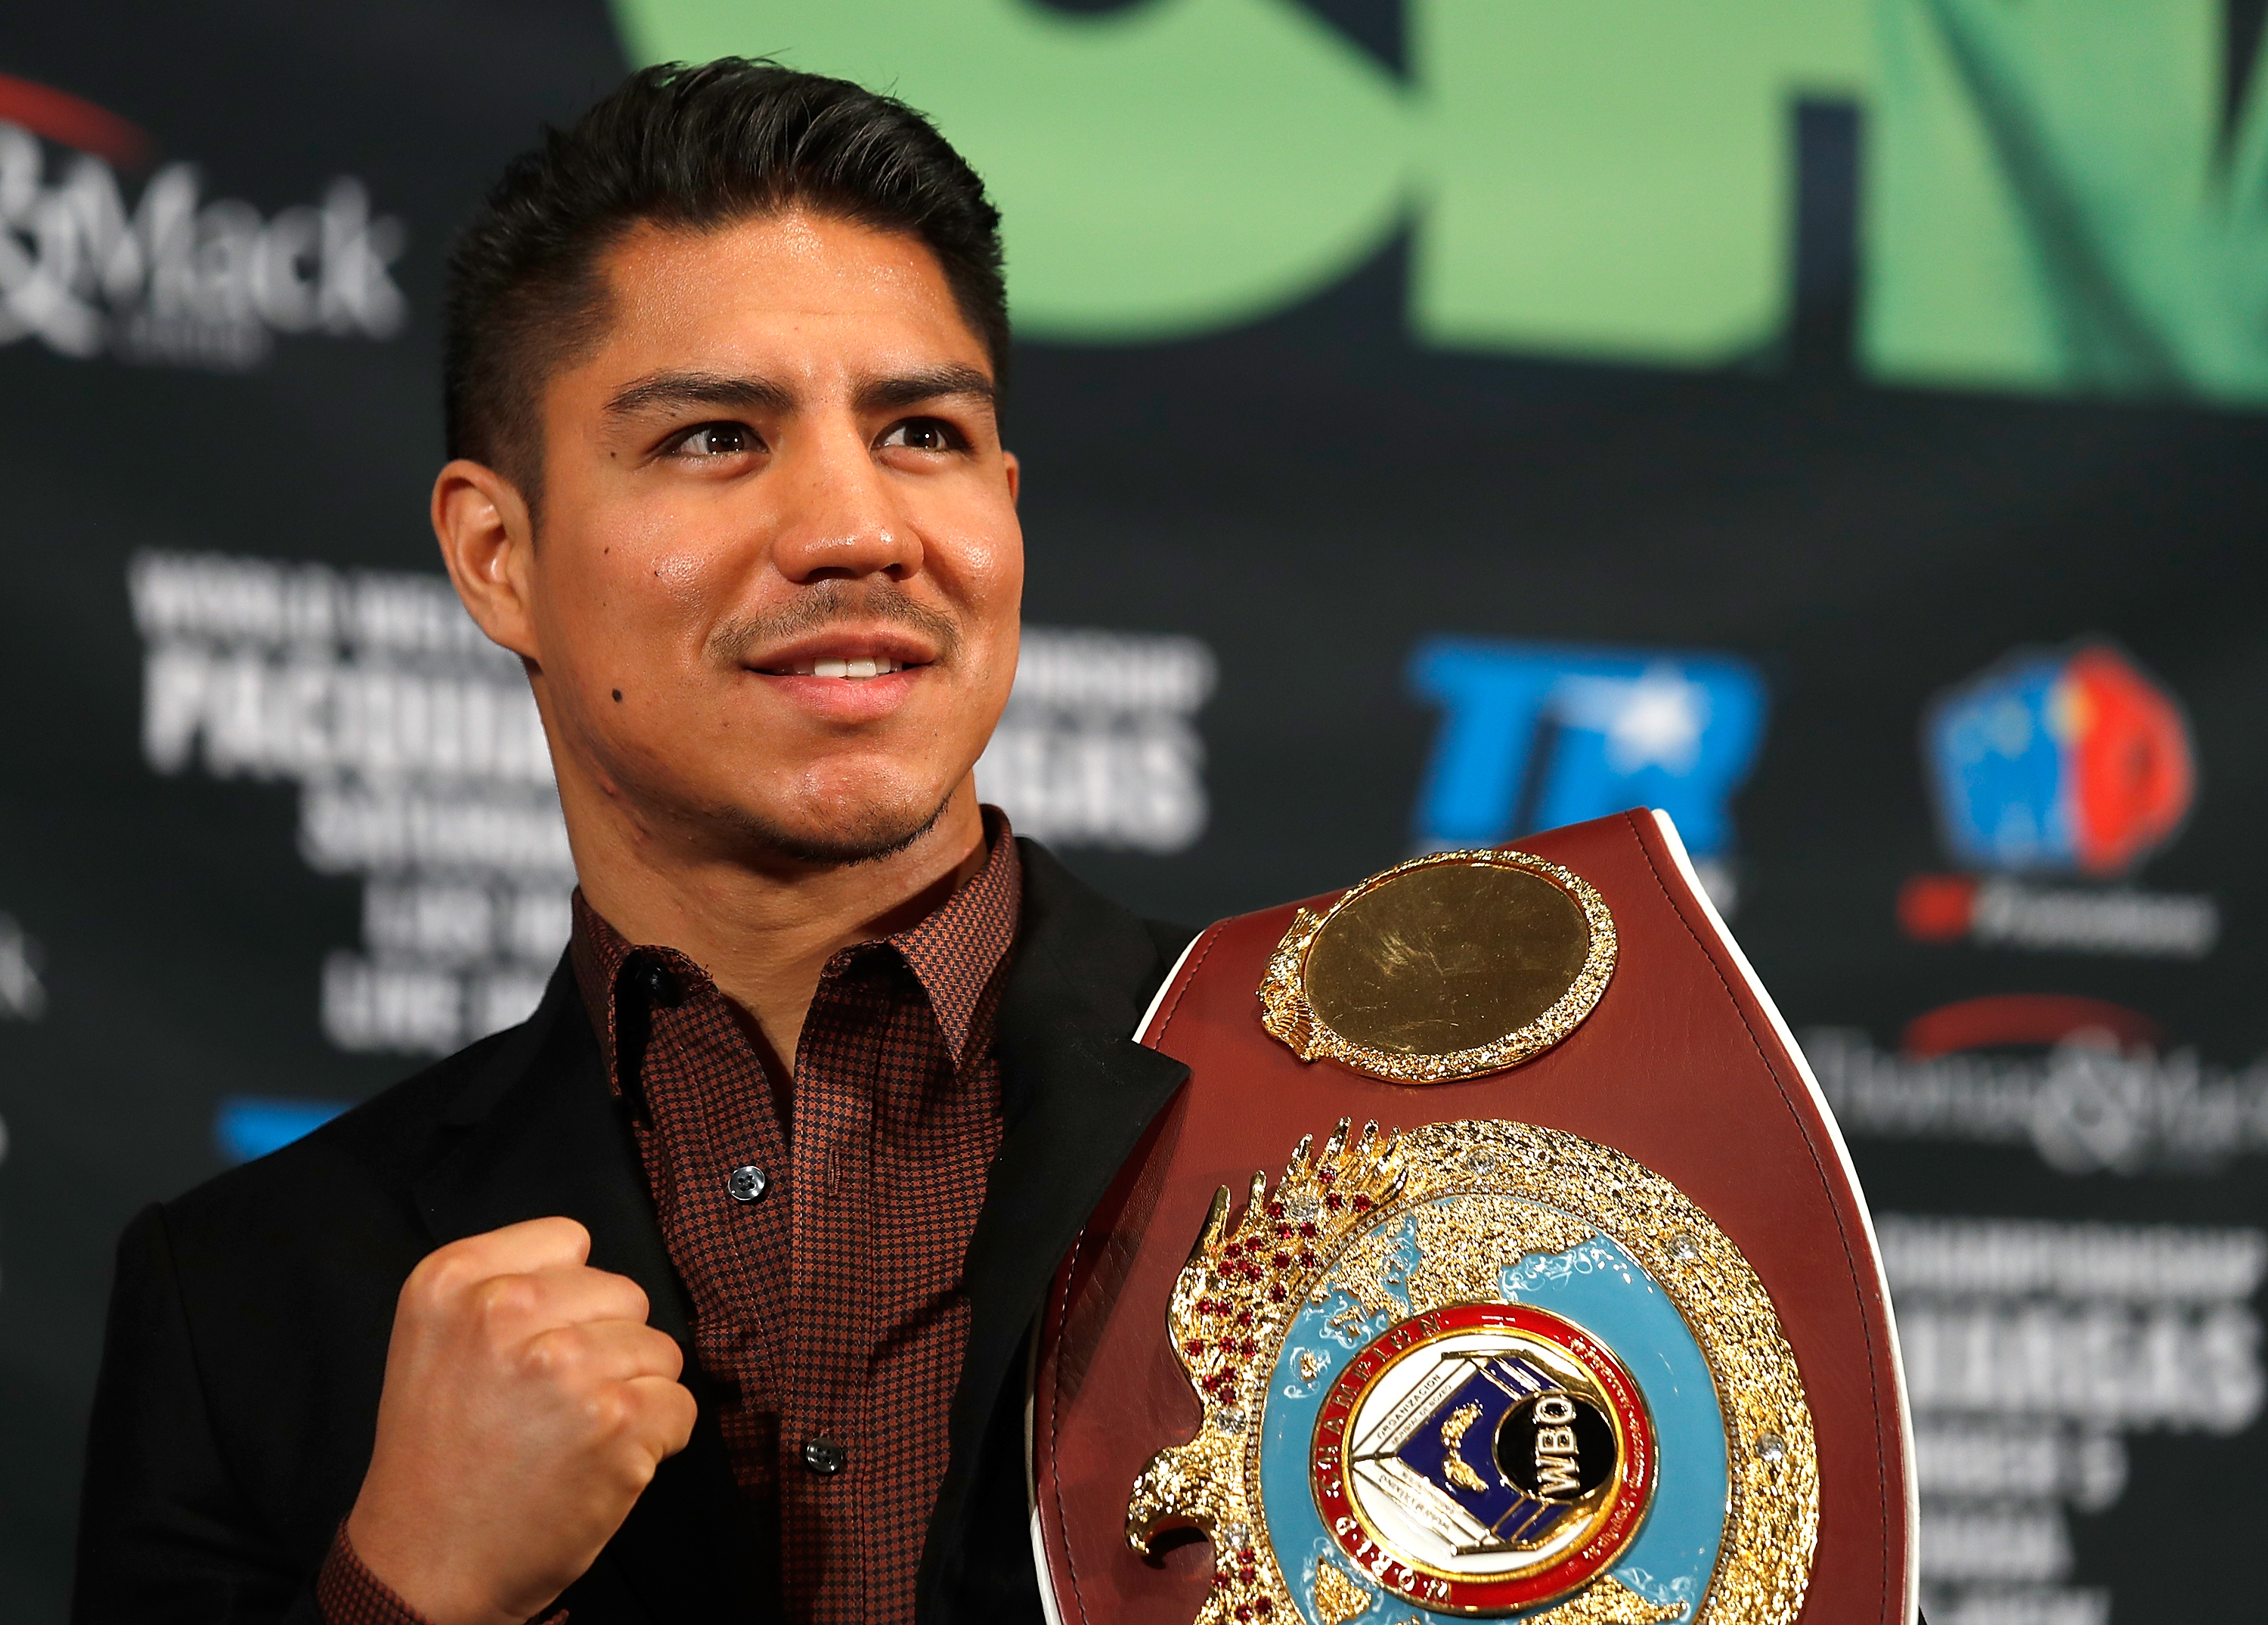 Manny Pacquiao v Jessie Vargas - Press Conference